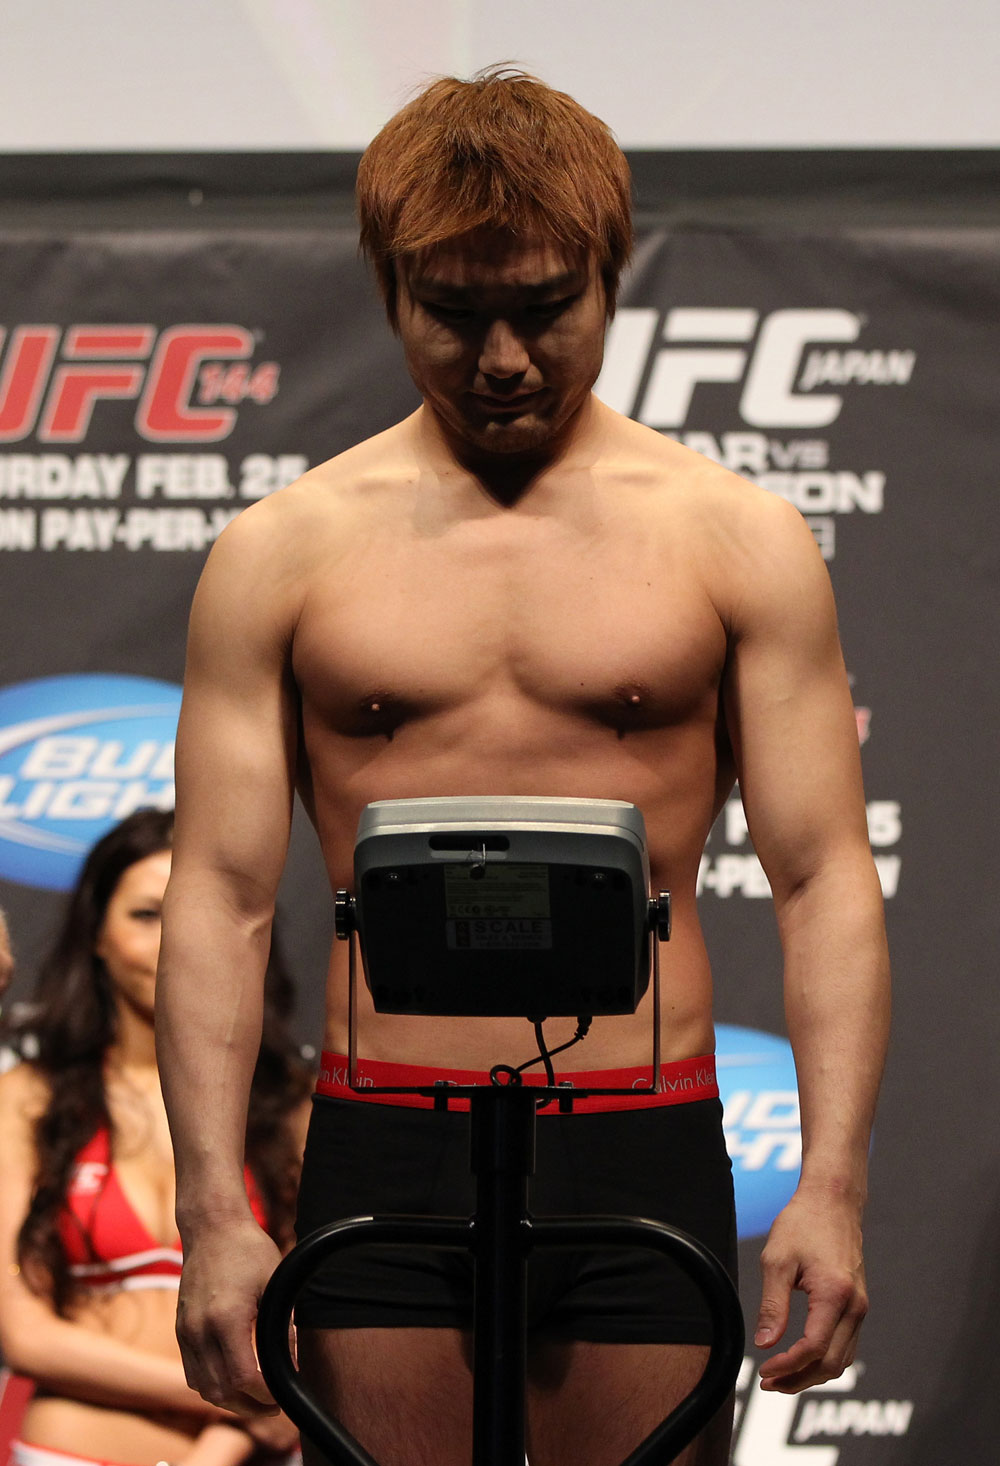 SAITAMA, JAPAN - FEBRUARY 25:  Takanori Gomi weighs in during the official UFC 144 weigh in at the Saitama Super Arena on February 25, 2012 in Saitama, Japan.  (Photo by Josh Hedges/Zuffa LLC/Zuffa LLC via Getty Images) *** Local Caption *** Takanori Gomi